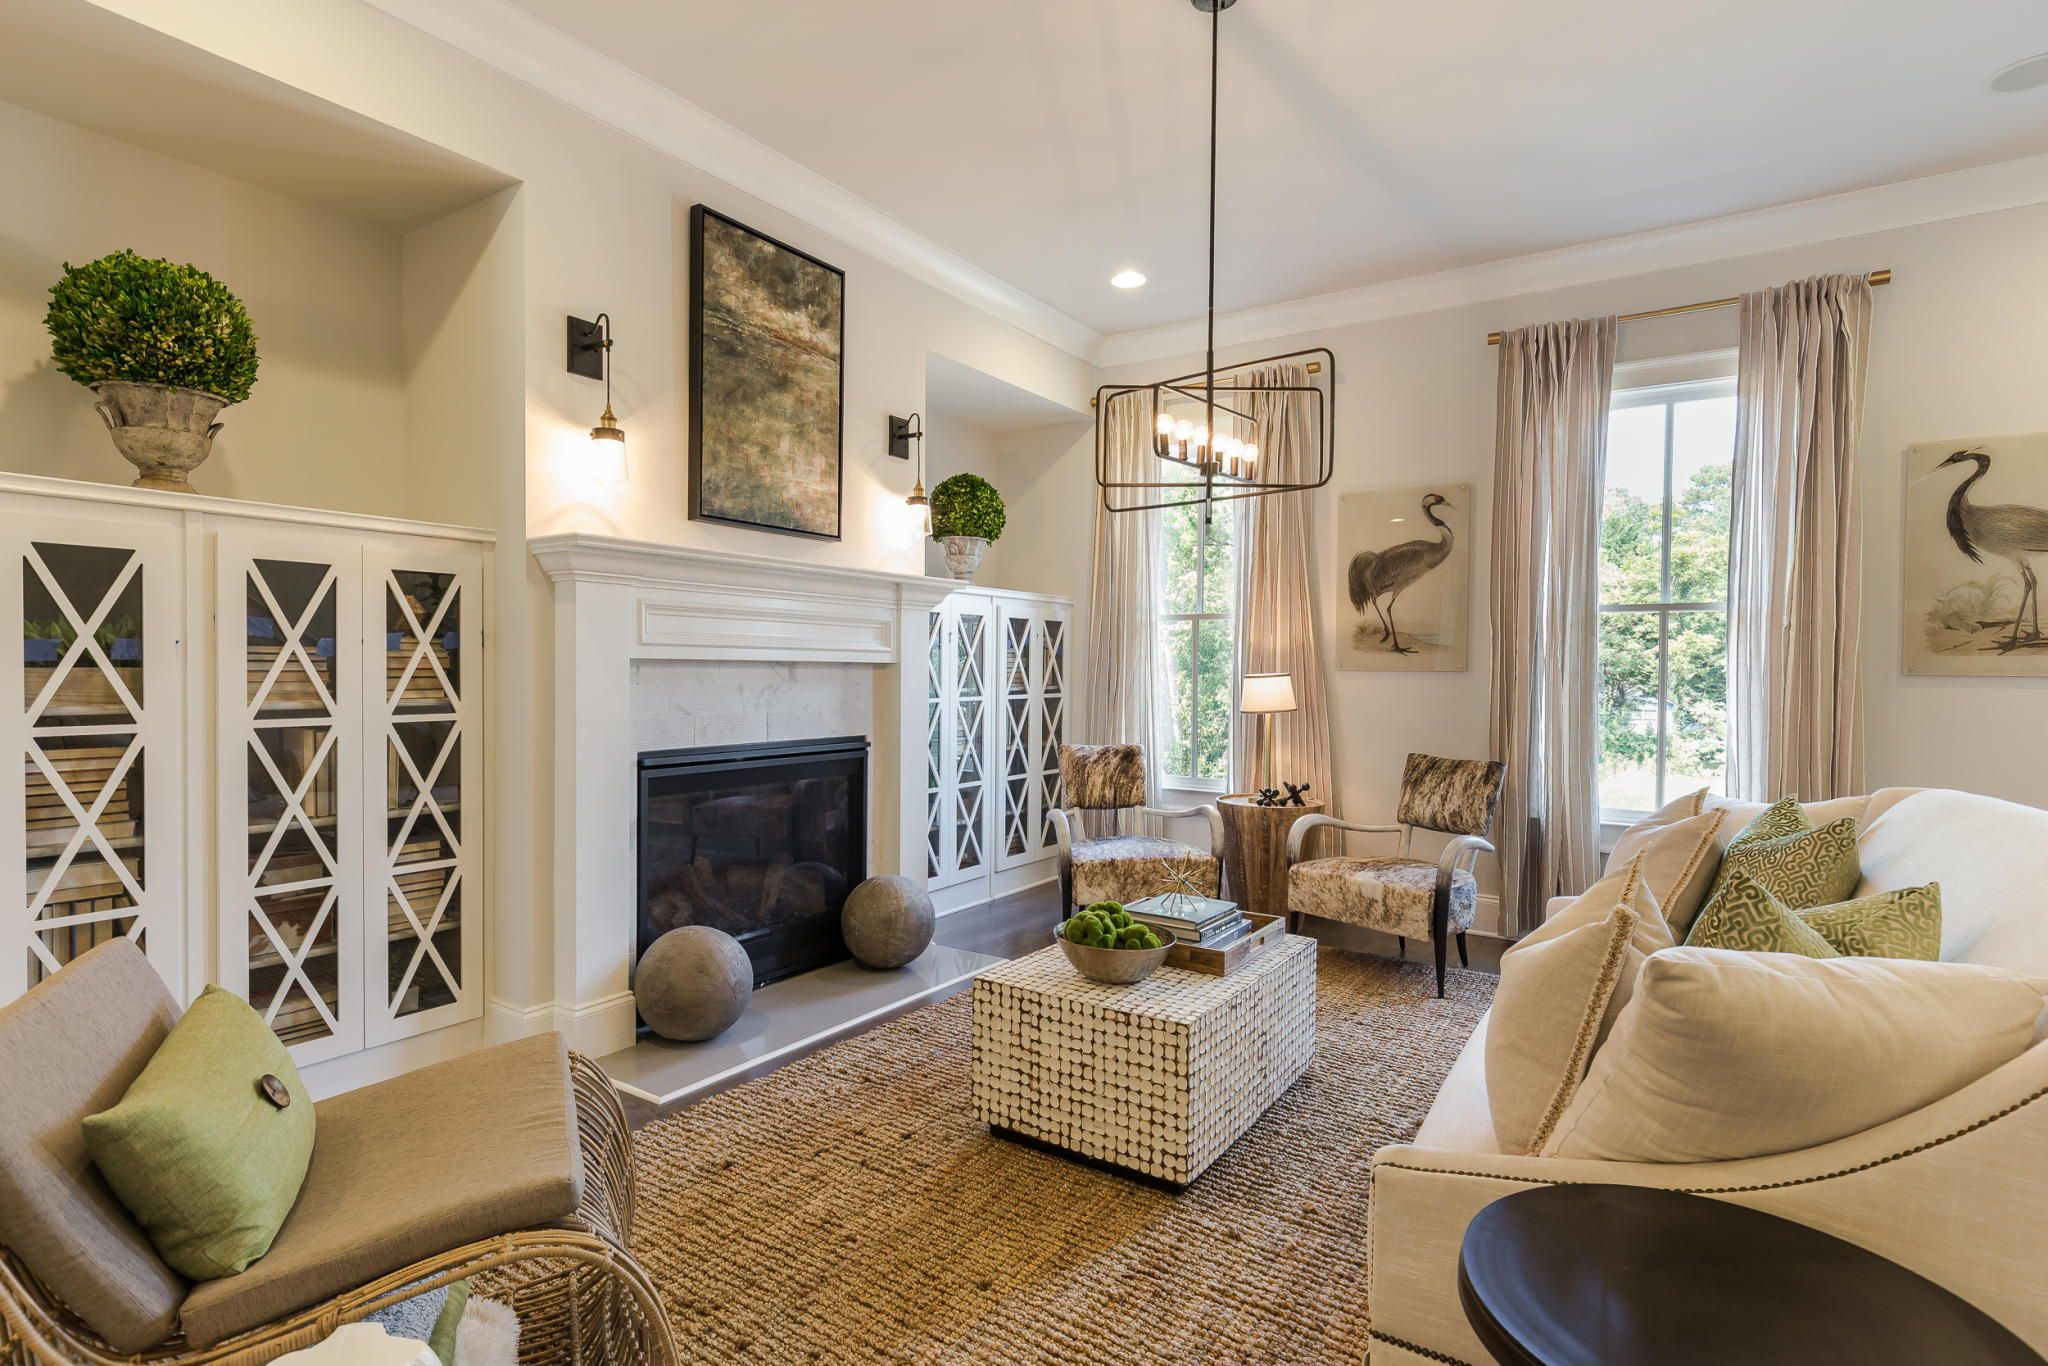 Traditional With A Modern Twist Natural Tones In 2020 Traditional Style Living Room New Homes Traditional Style Living Room Designs #traditional #pictures #for #living #room